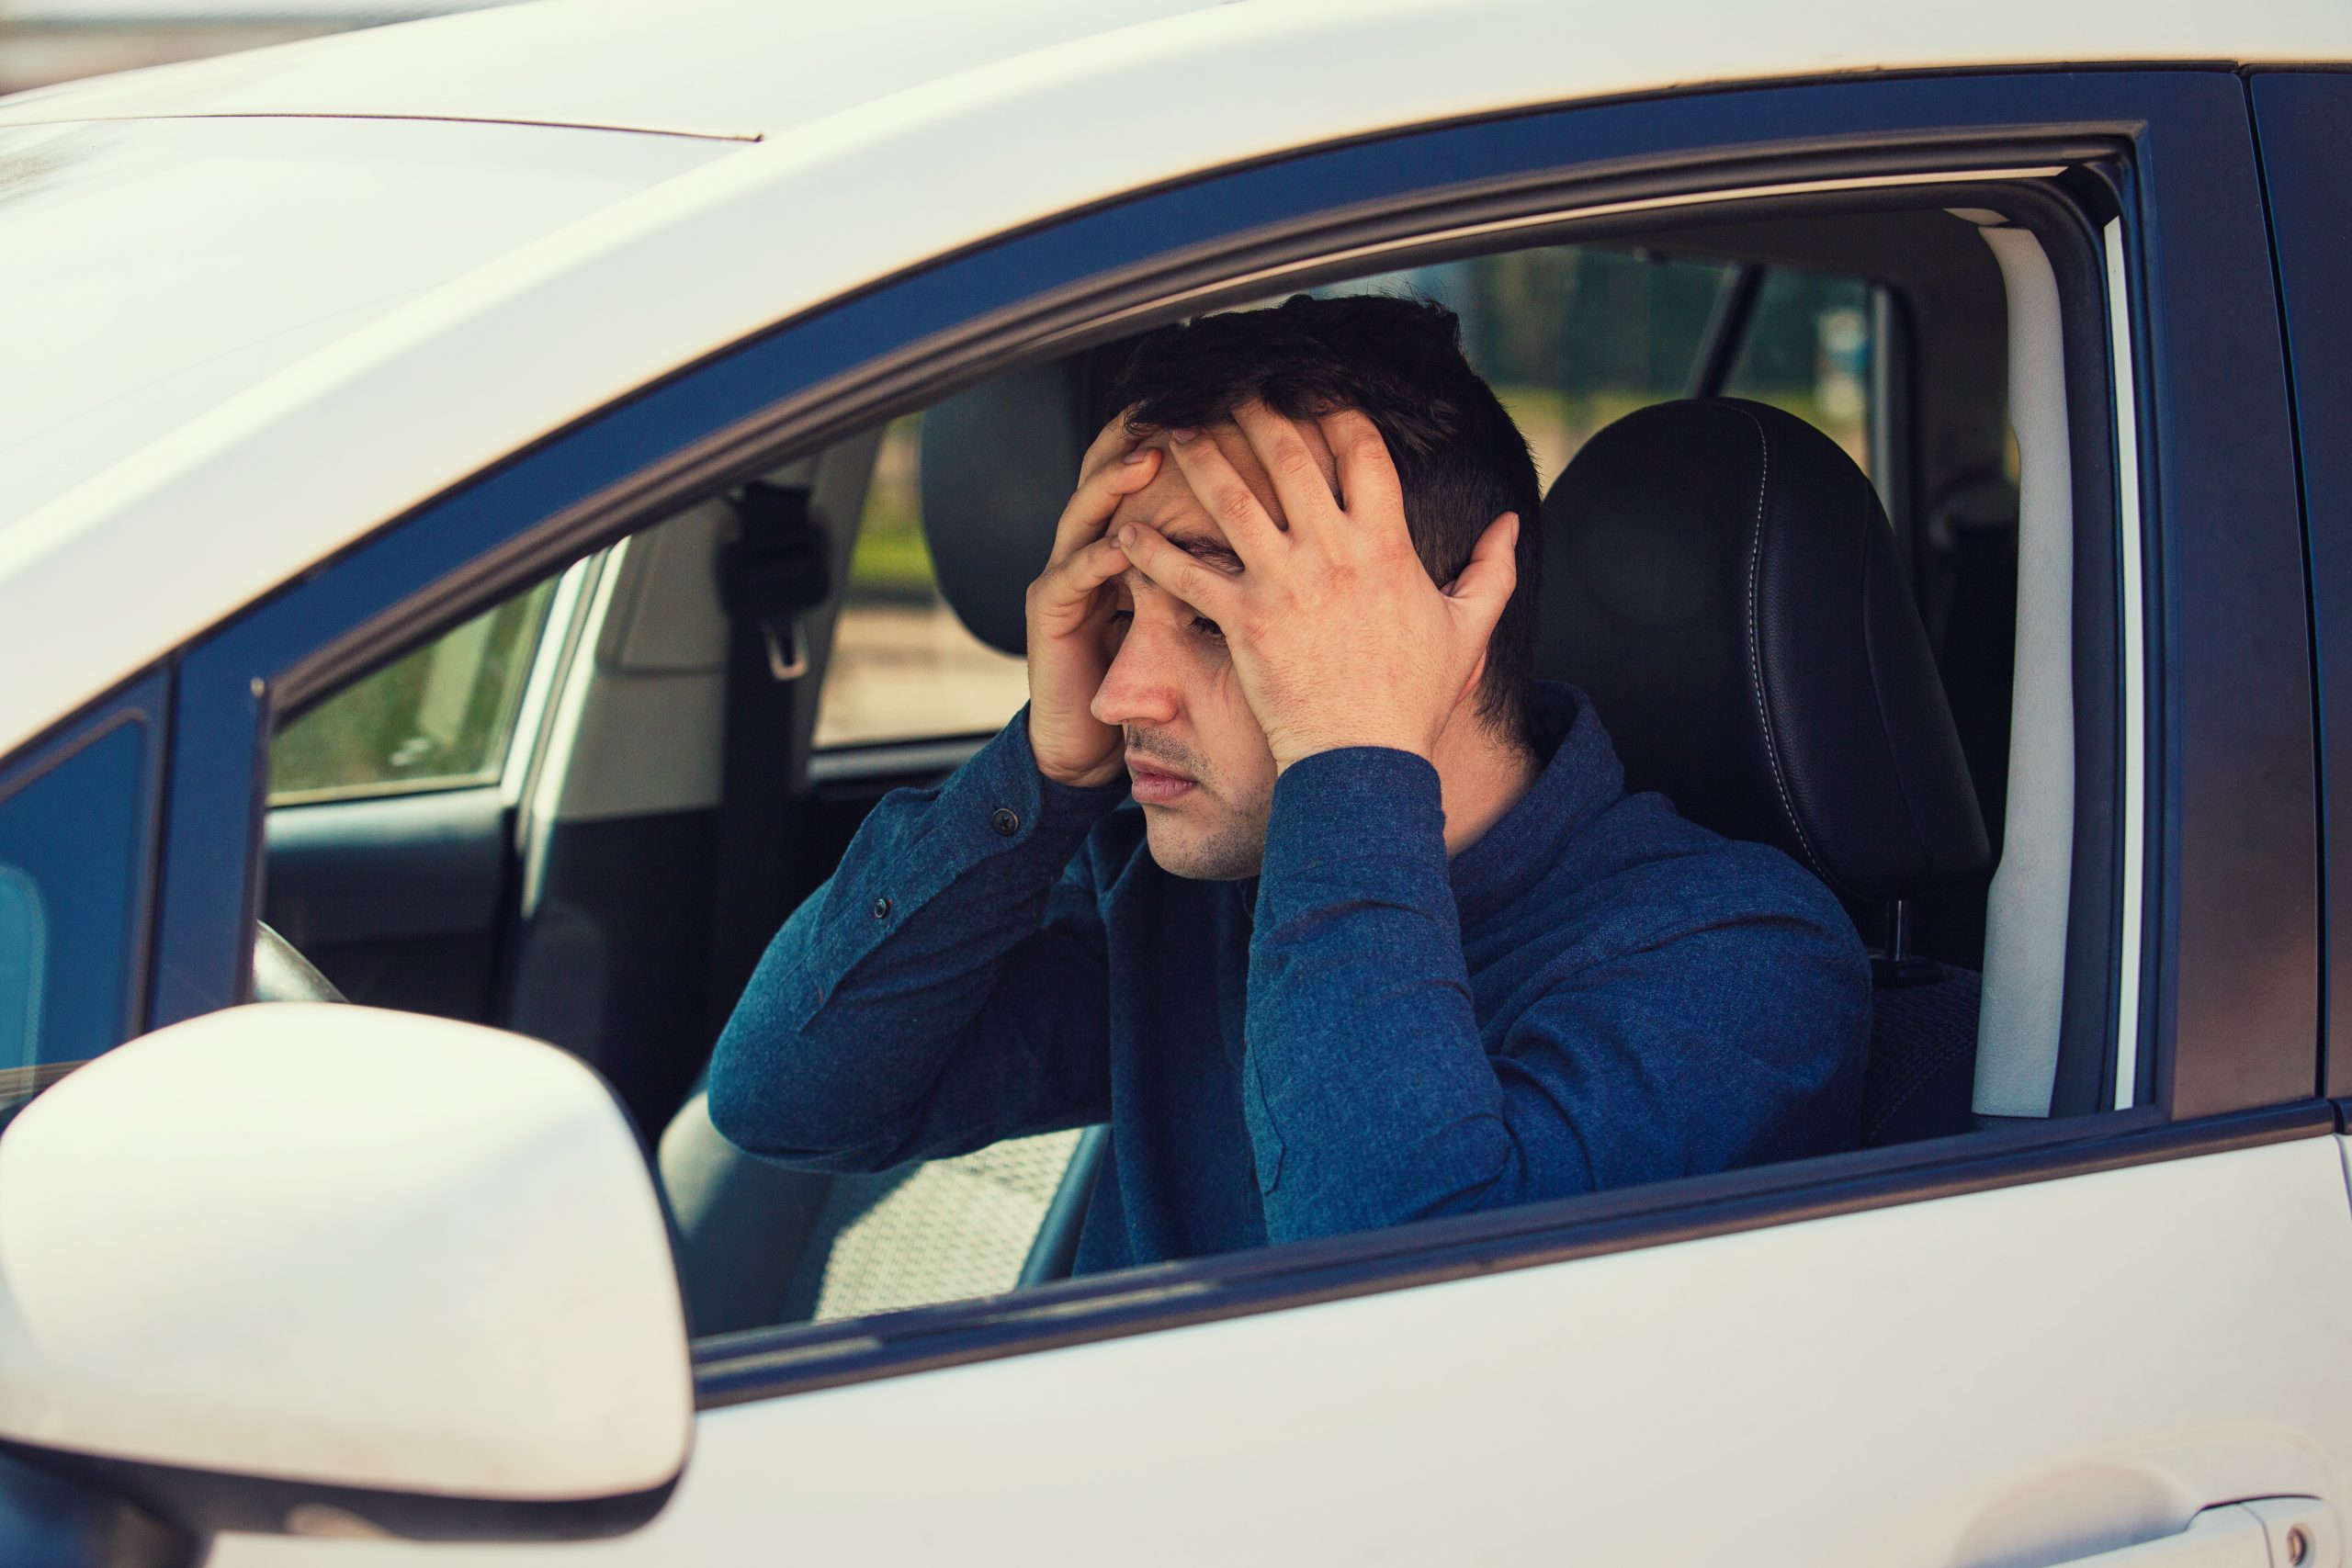 Drive Offs Double in Past Three Years – mostly 'human error'